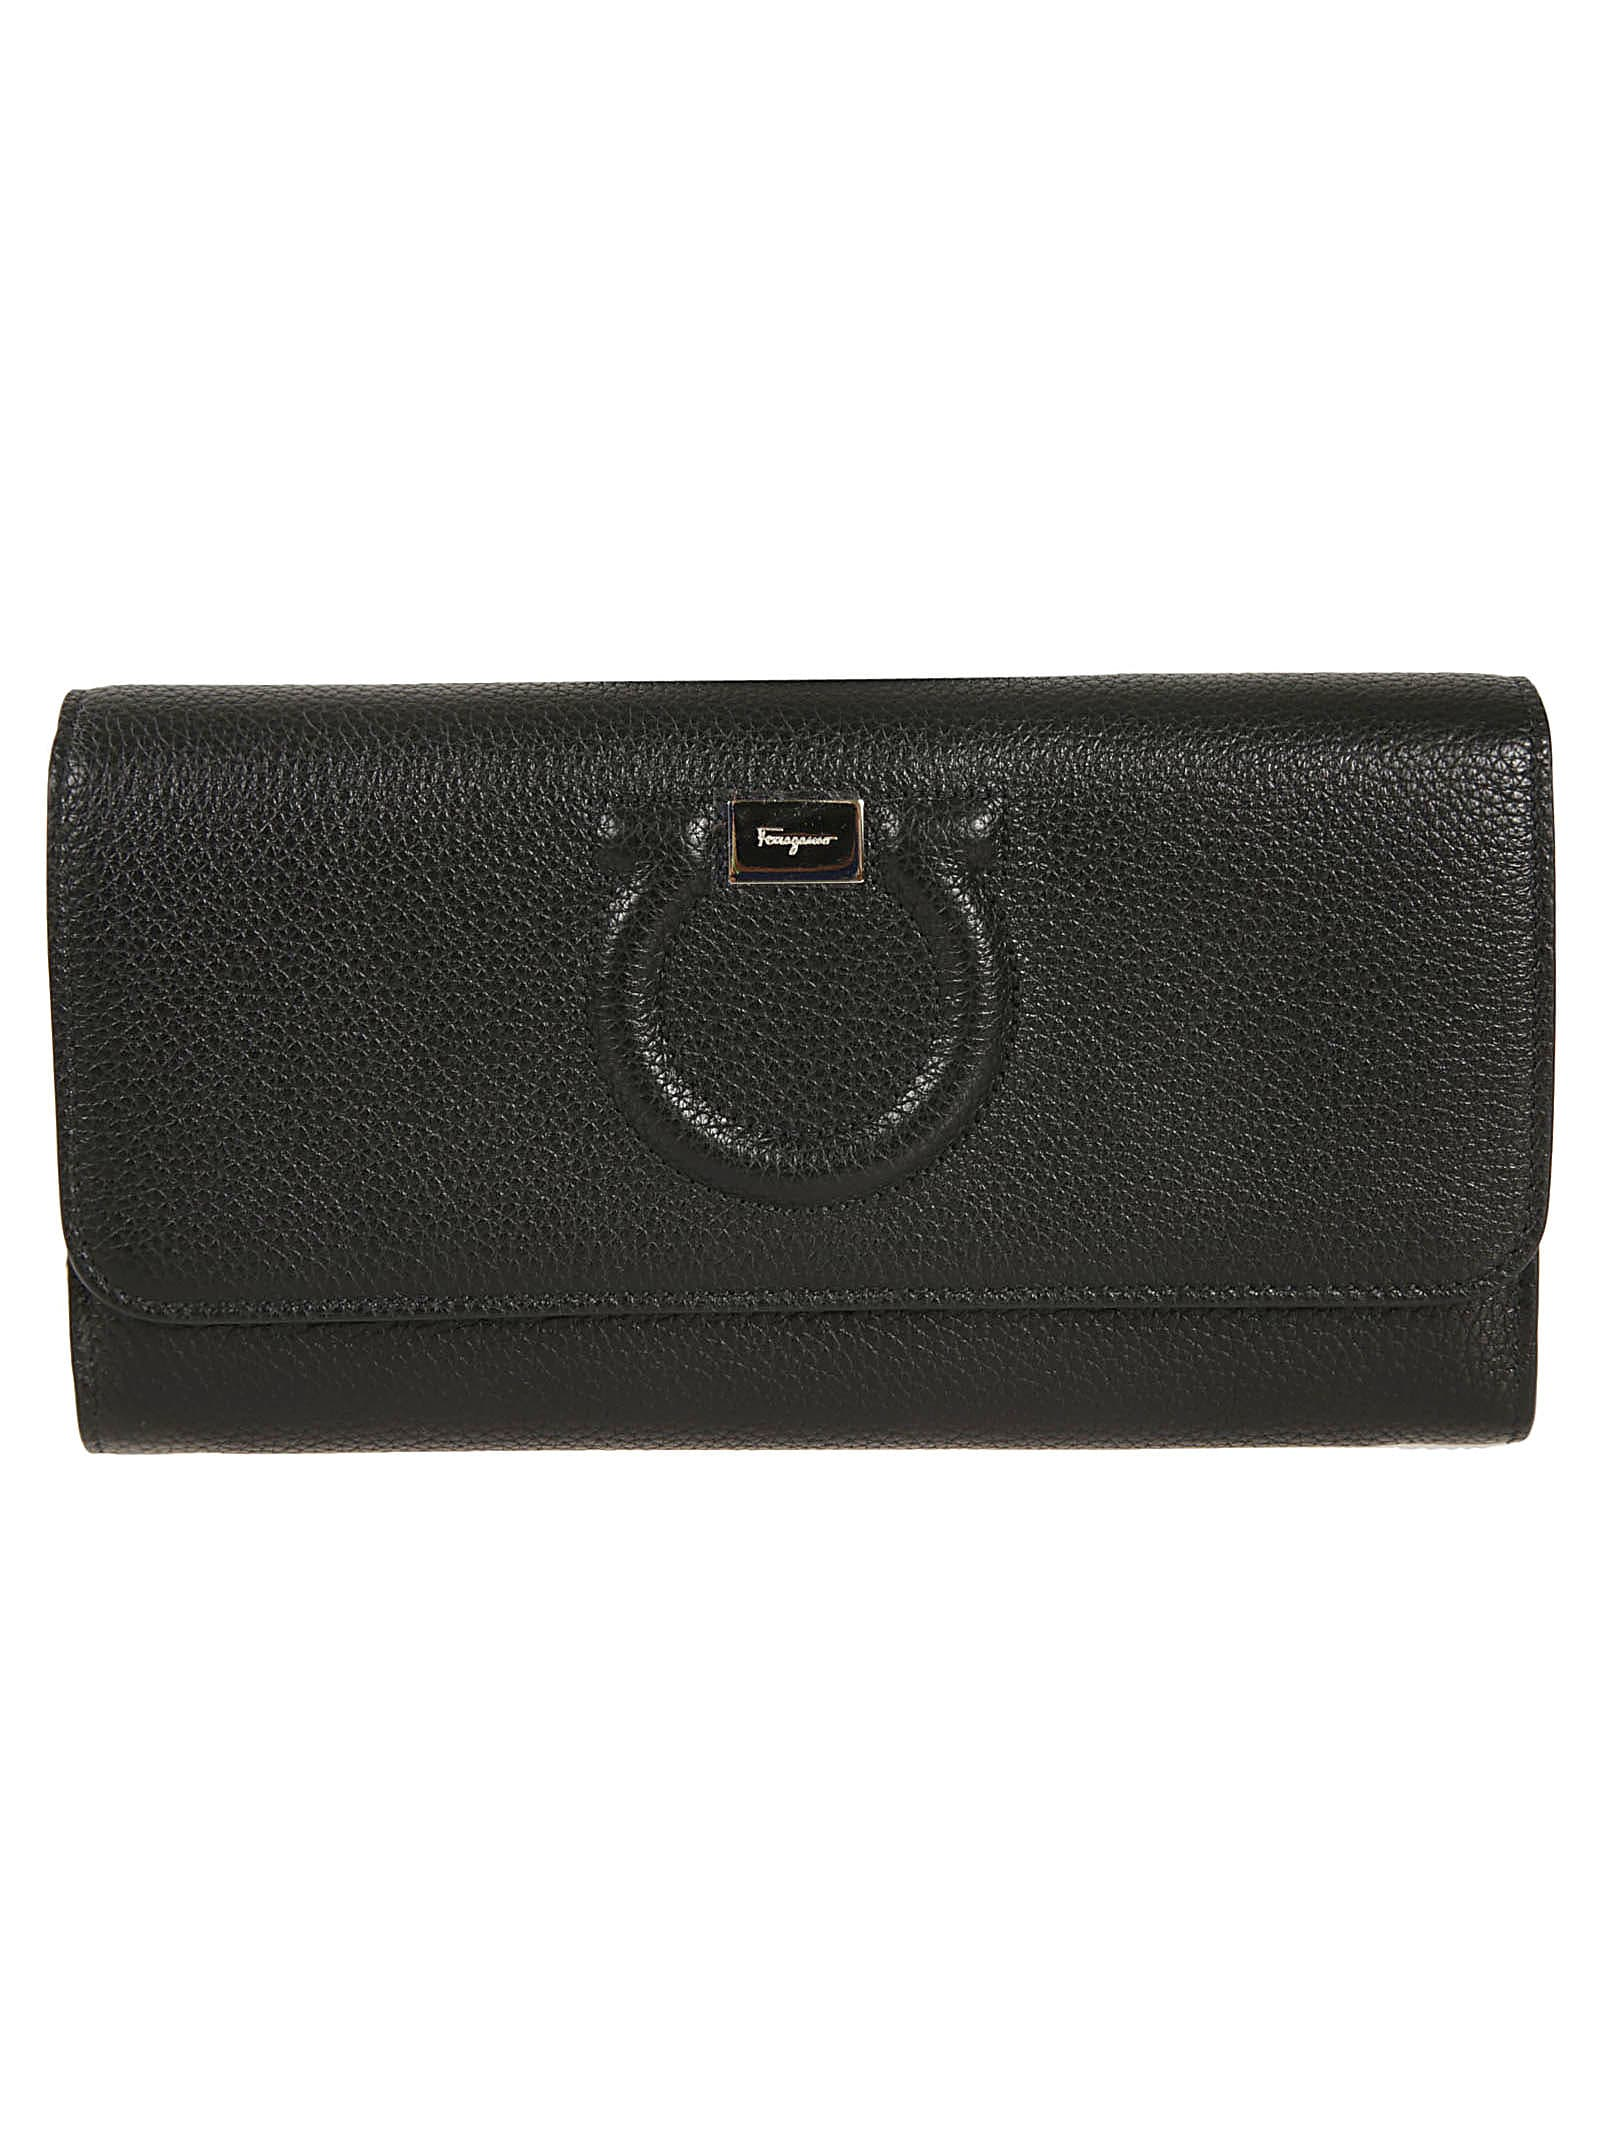 Salvatore Ferragamo Embossed Logo Chain Strap Clutch